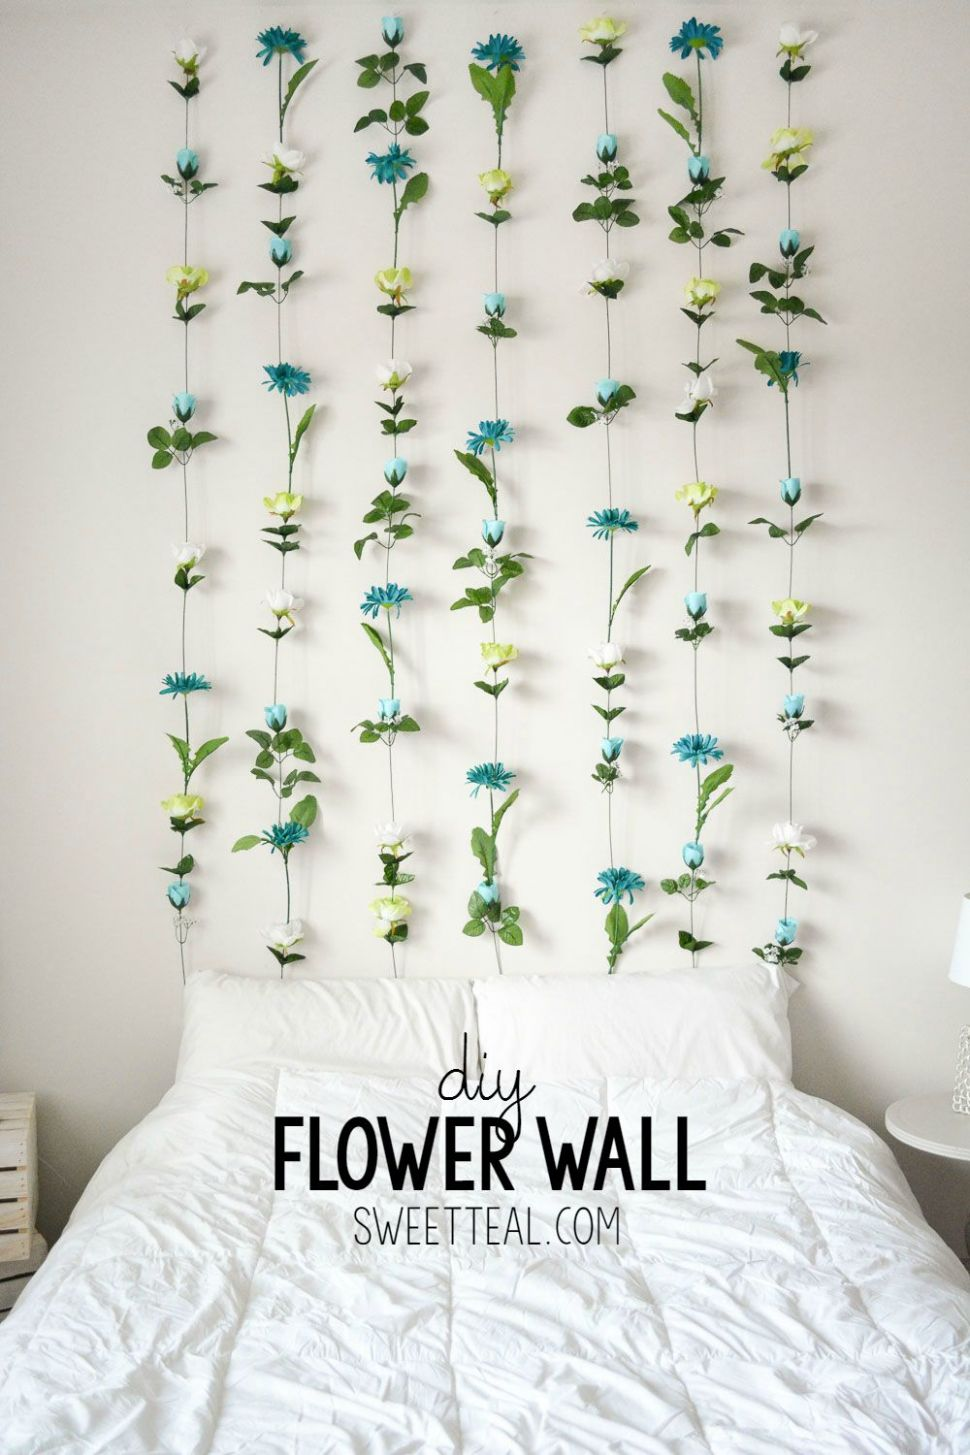 DIY Flower Wall (With images) | Diy bedroom decor for teens, Diy ...